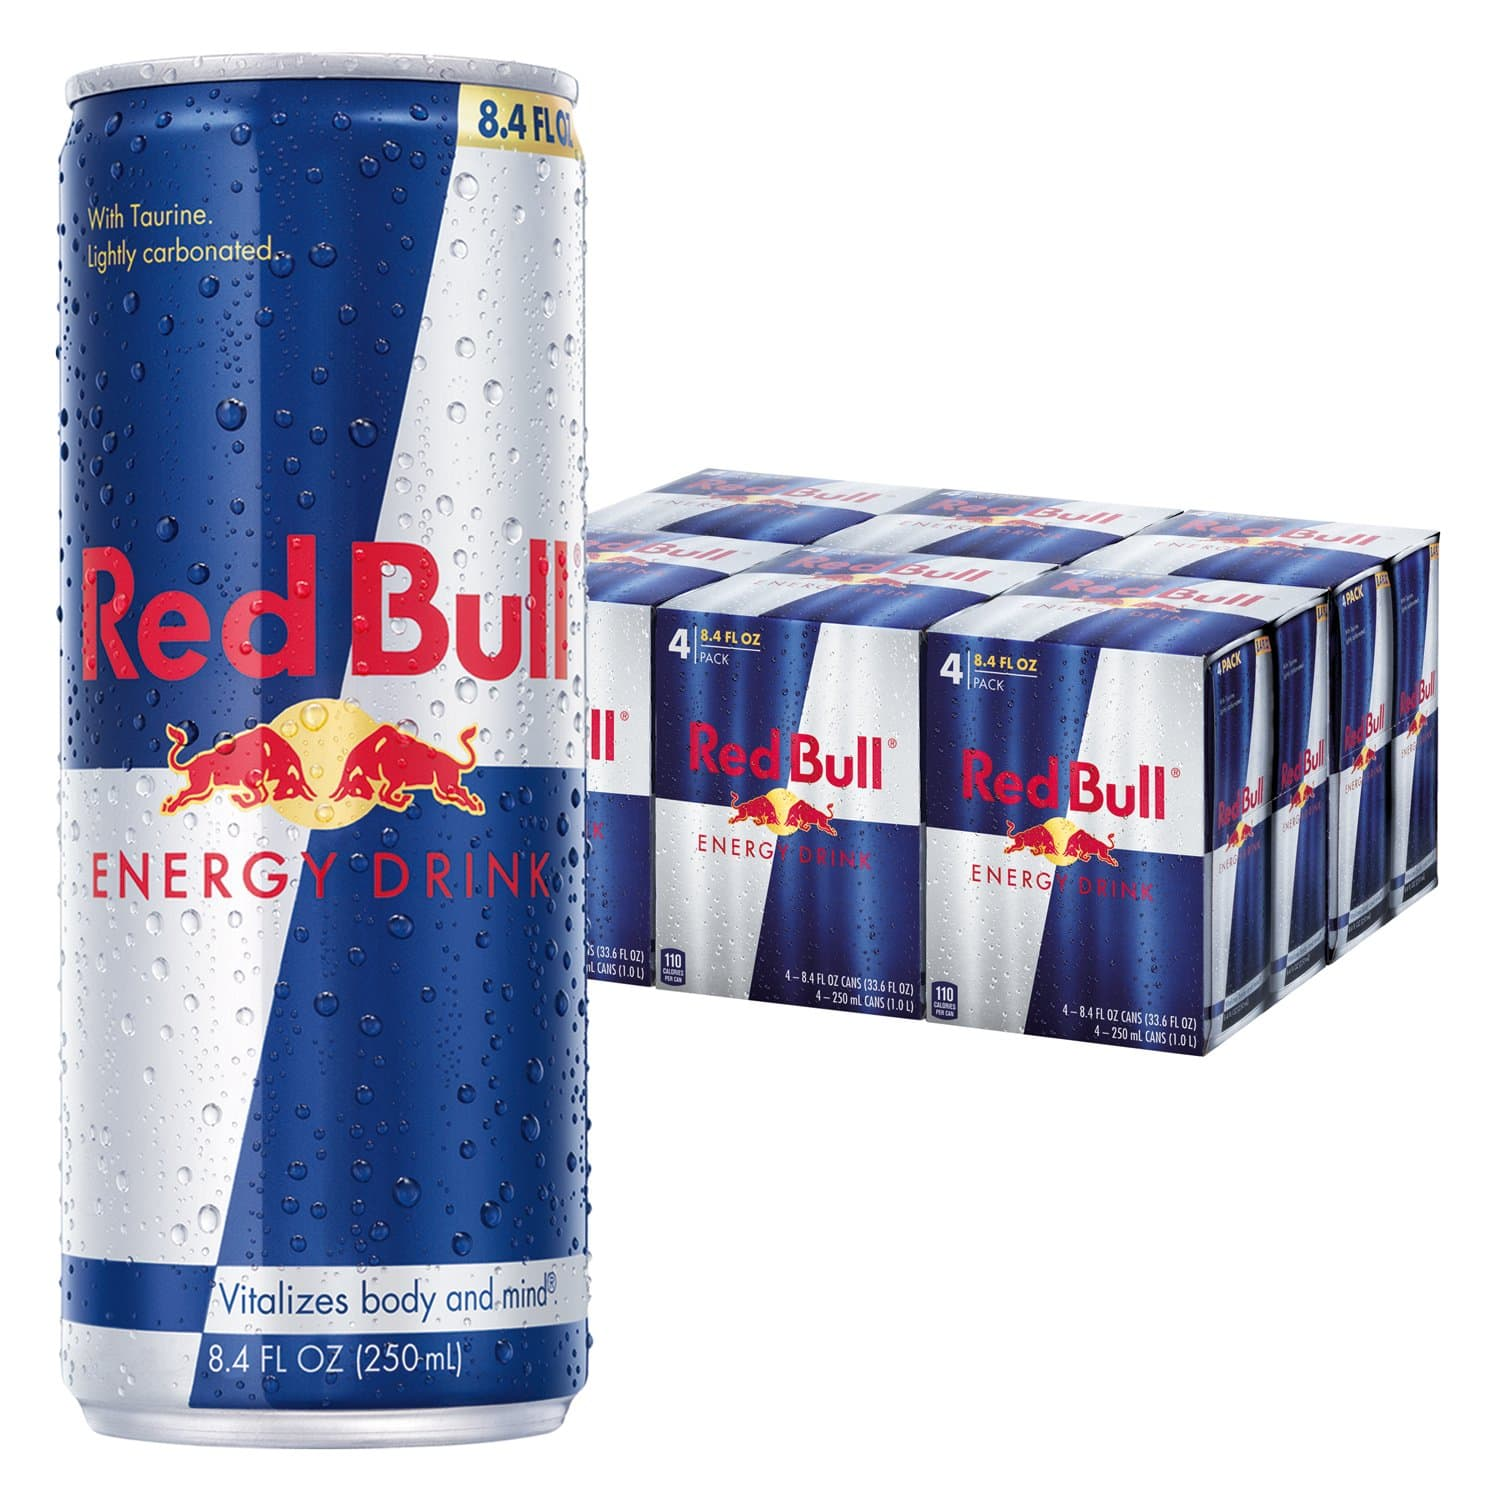 Red Bull Energy Drink, 8.4 Fl Oz (24 Count) - $26.99 - ($30.37 after taxes)